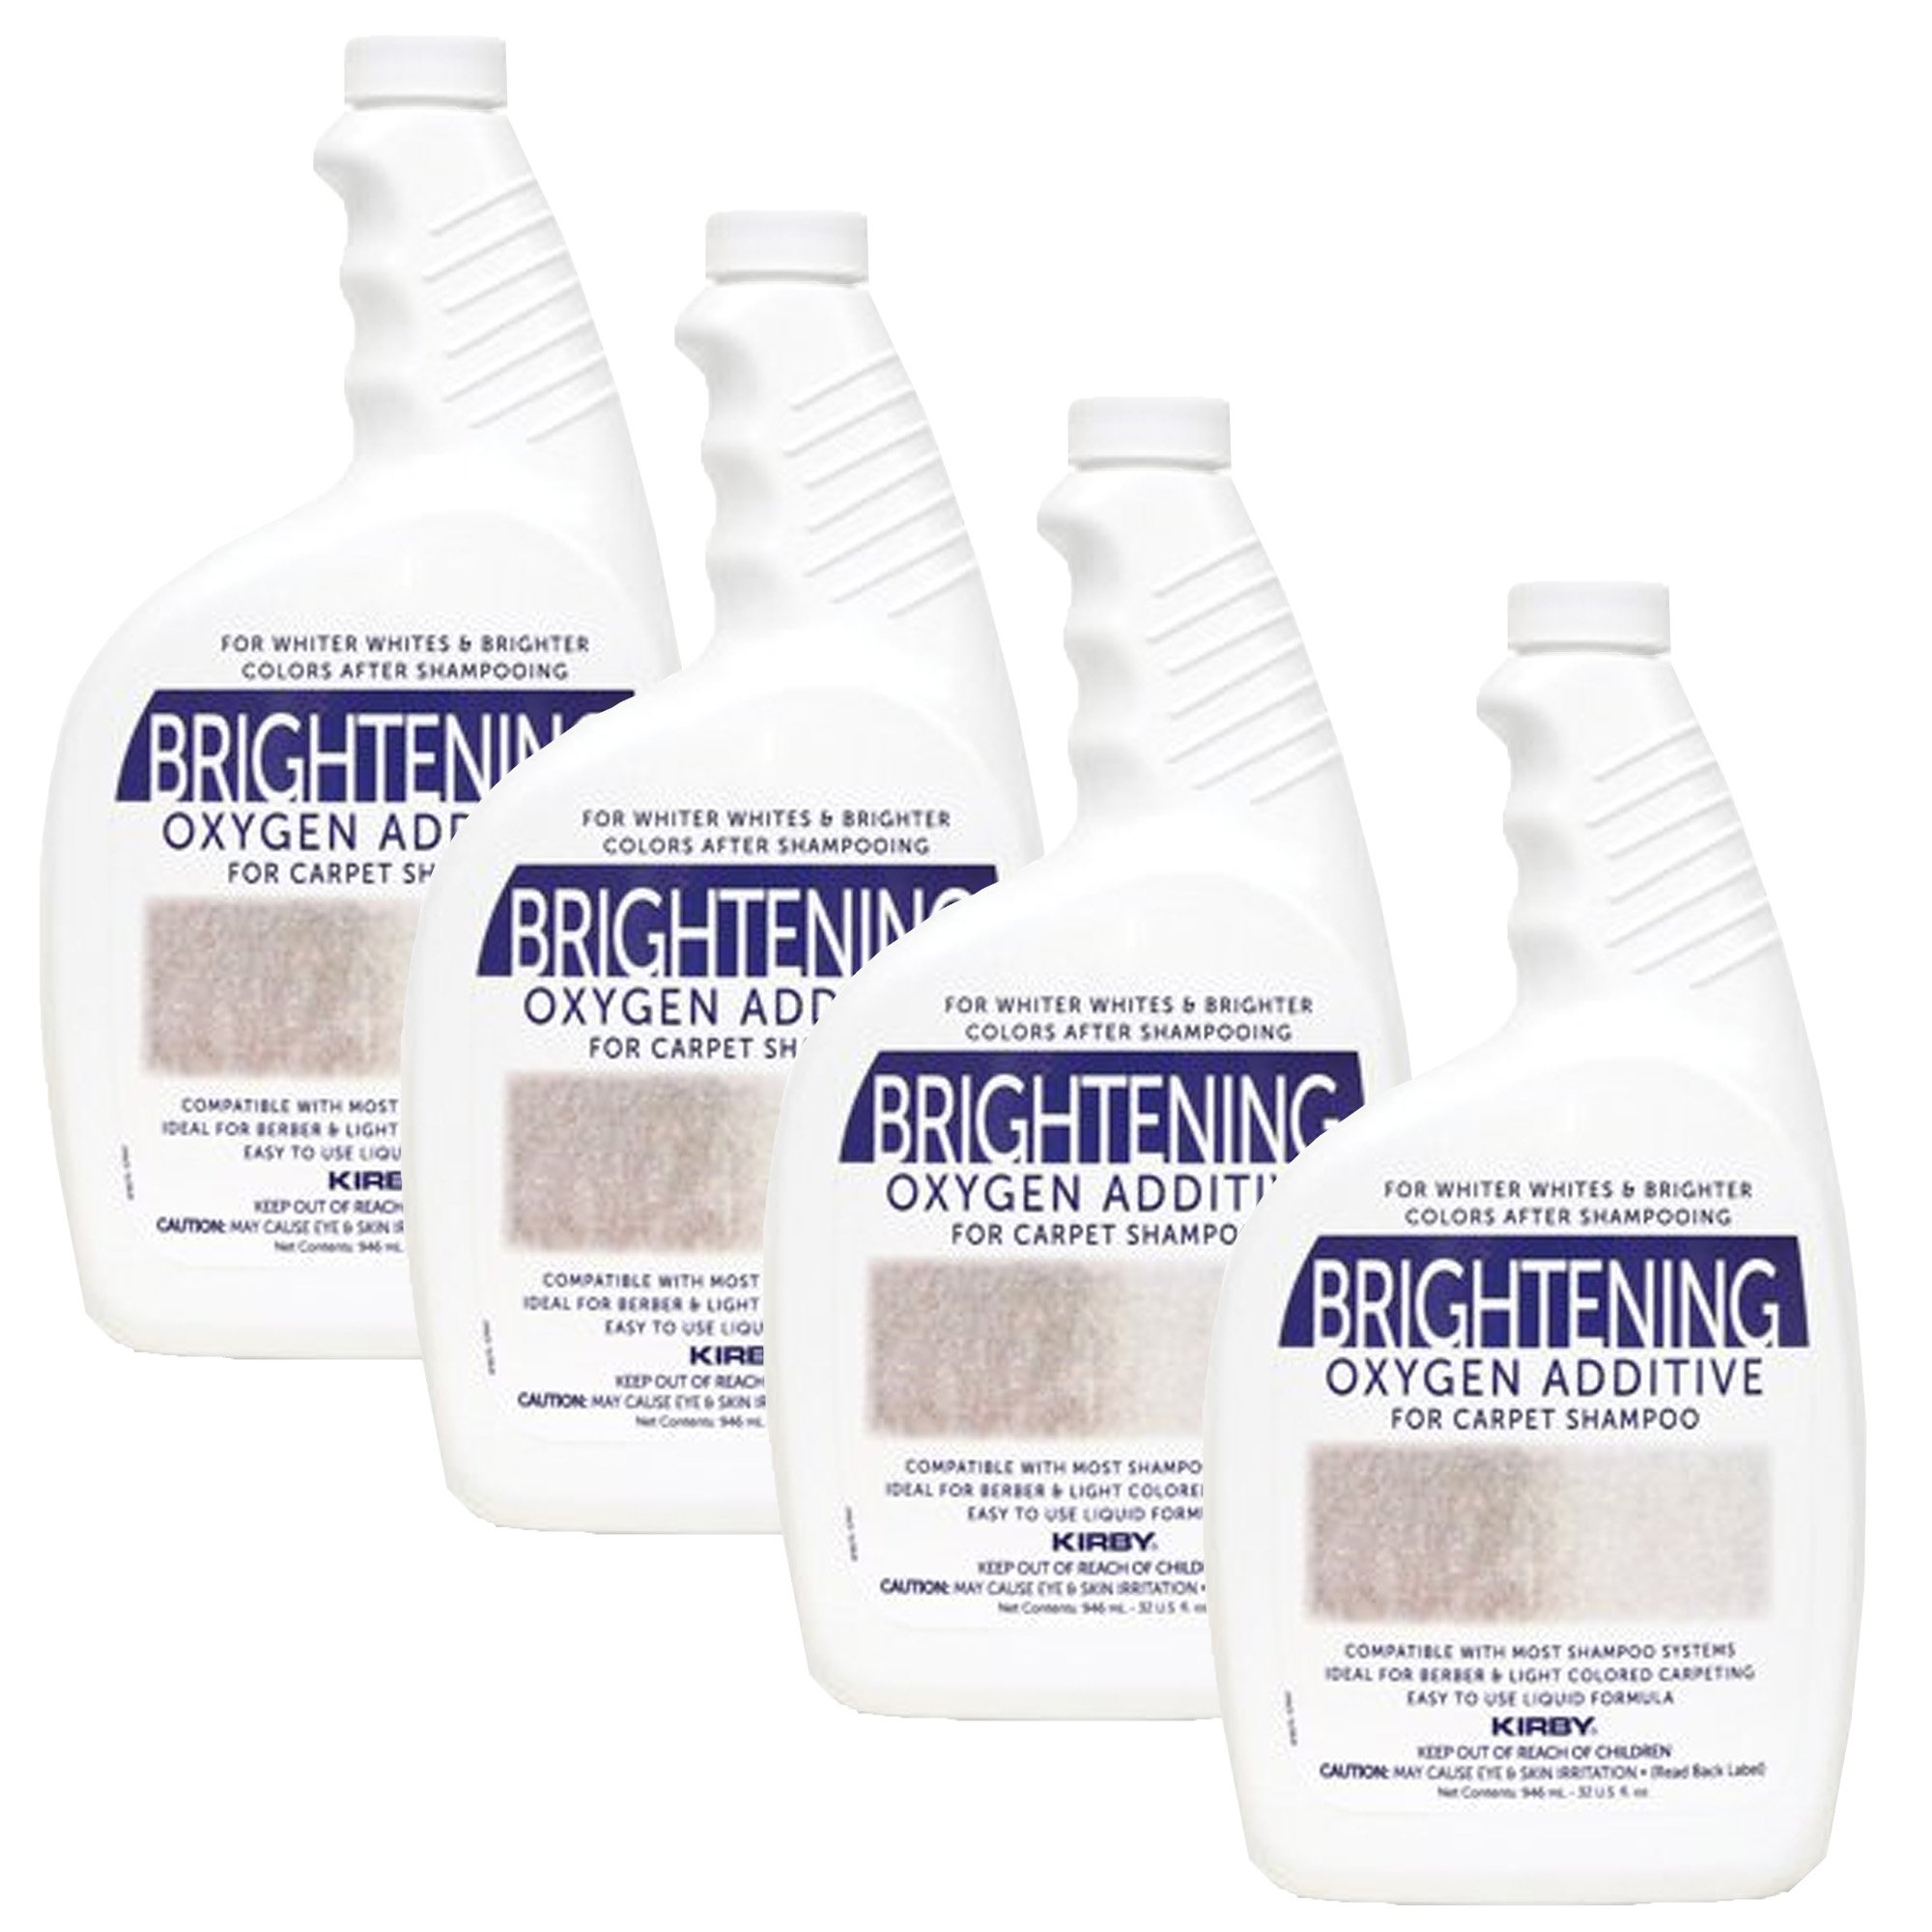 Genuine Kirby 32oz. Brightening Oxygen Additive for carpet shampoo (4 bottles)